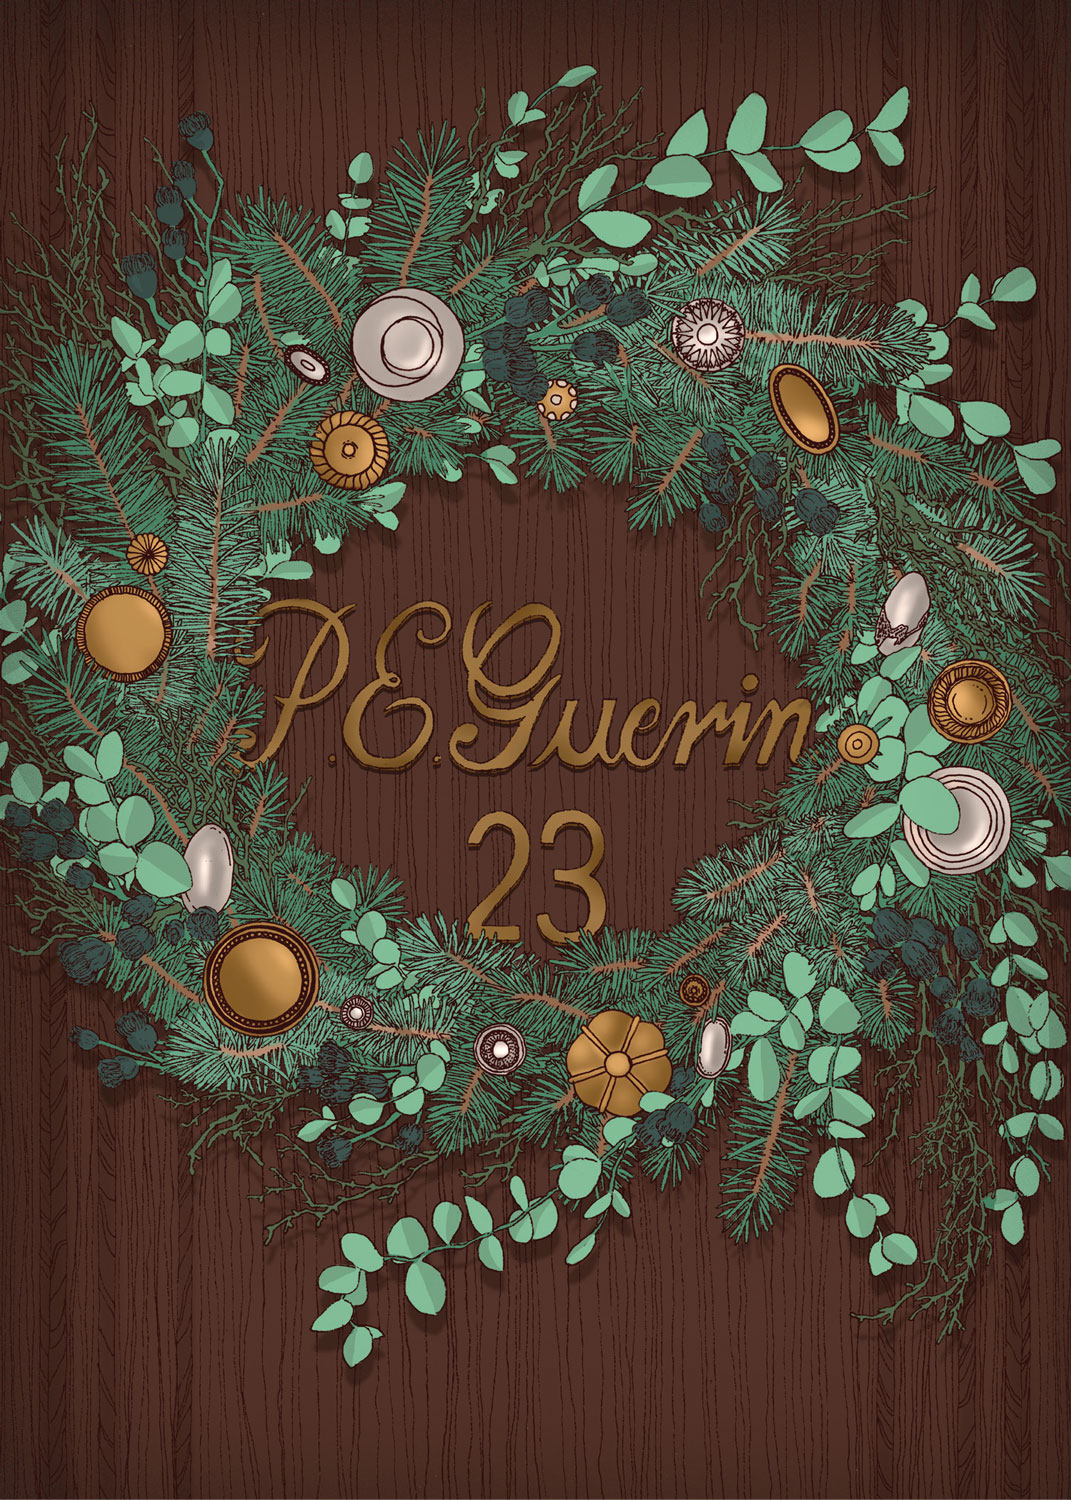 christmascardlayout_2-3.jpg